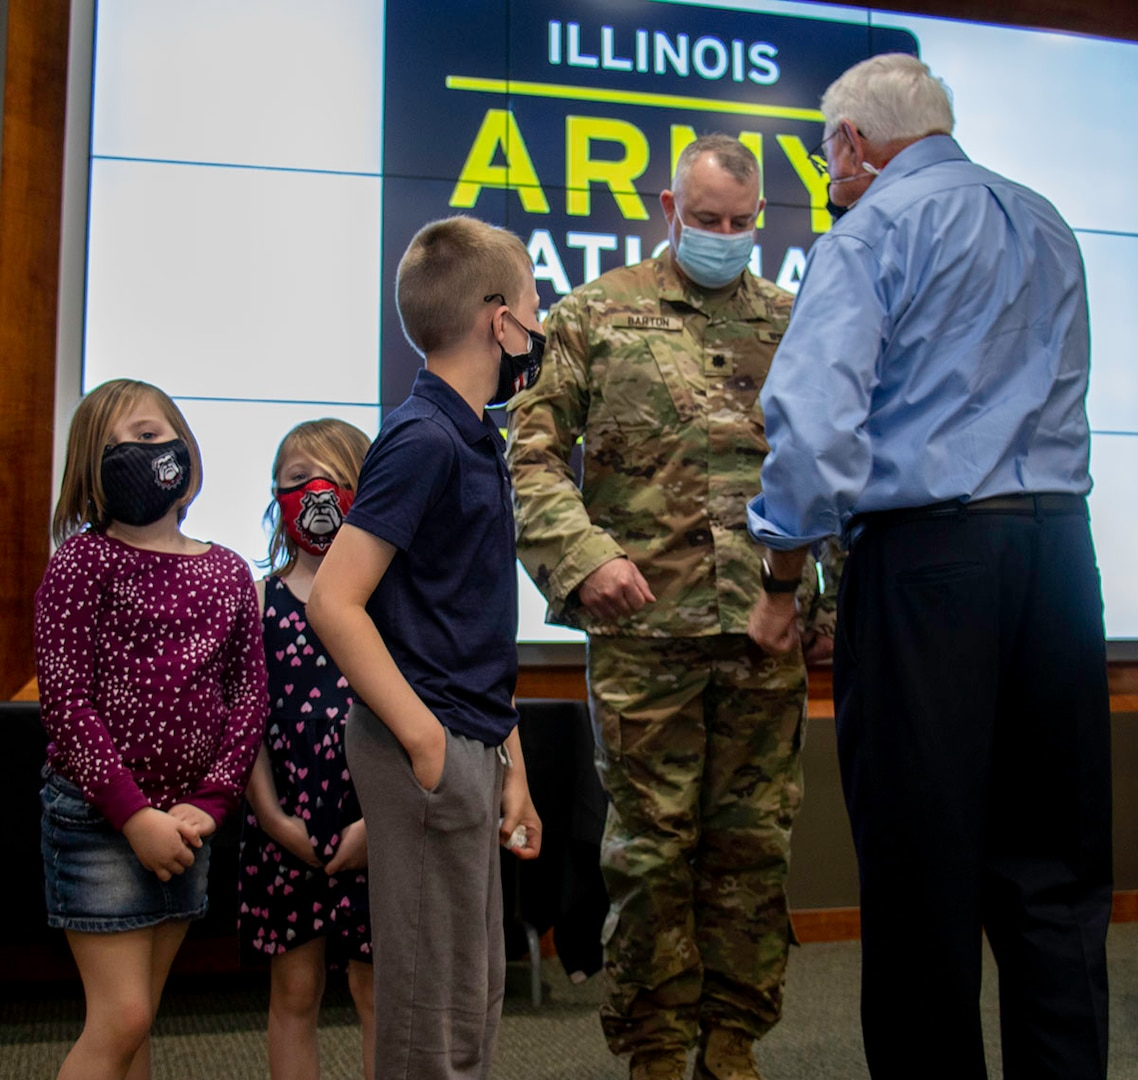 Family of newly promoted Lt. Col. Michael Barton, of Greenview, Illinois, children Bryer, Scarlett and Rhett, and uncle, Neil Tousley, tack on new rank during Barton's promotion ceremony April 5 at Camp Lincoln in Springfield, Illinois.